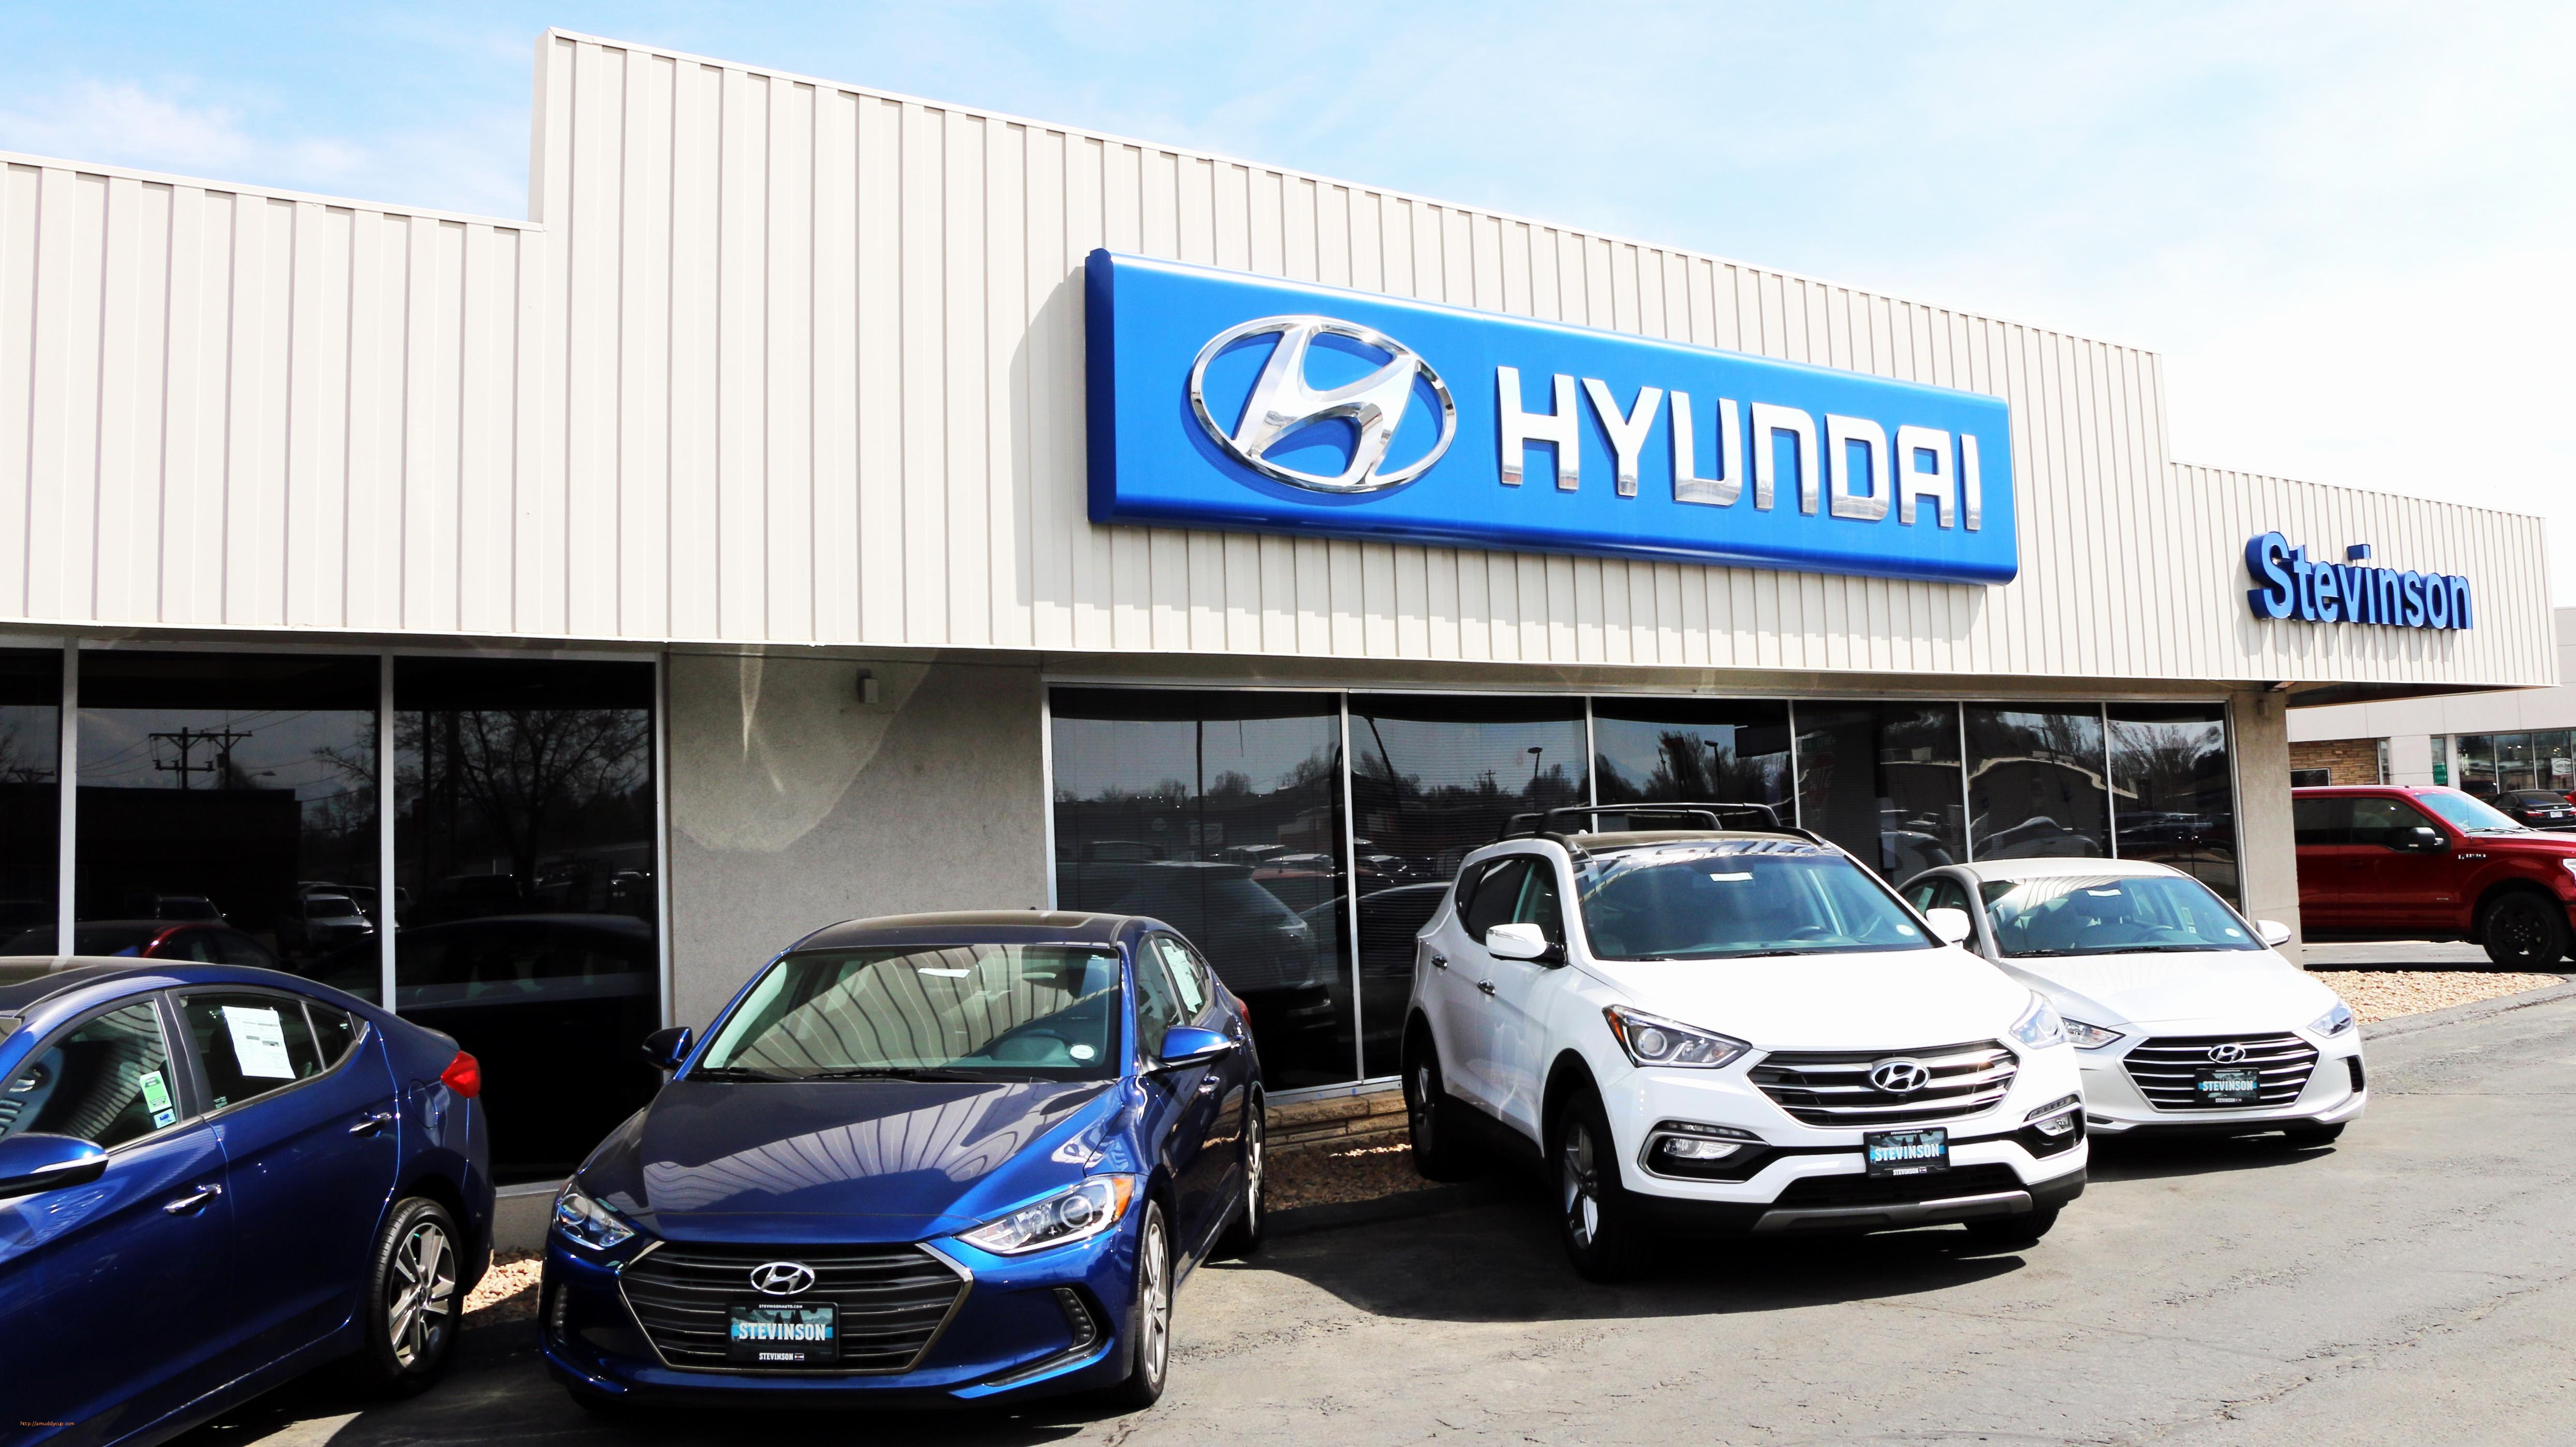 image for car dealerships marlow heights md